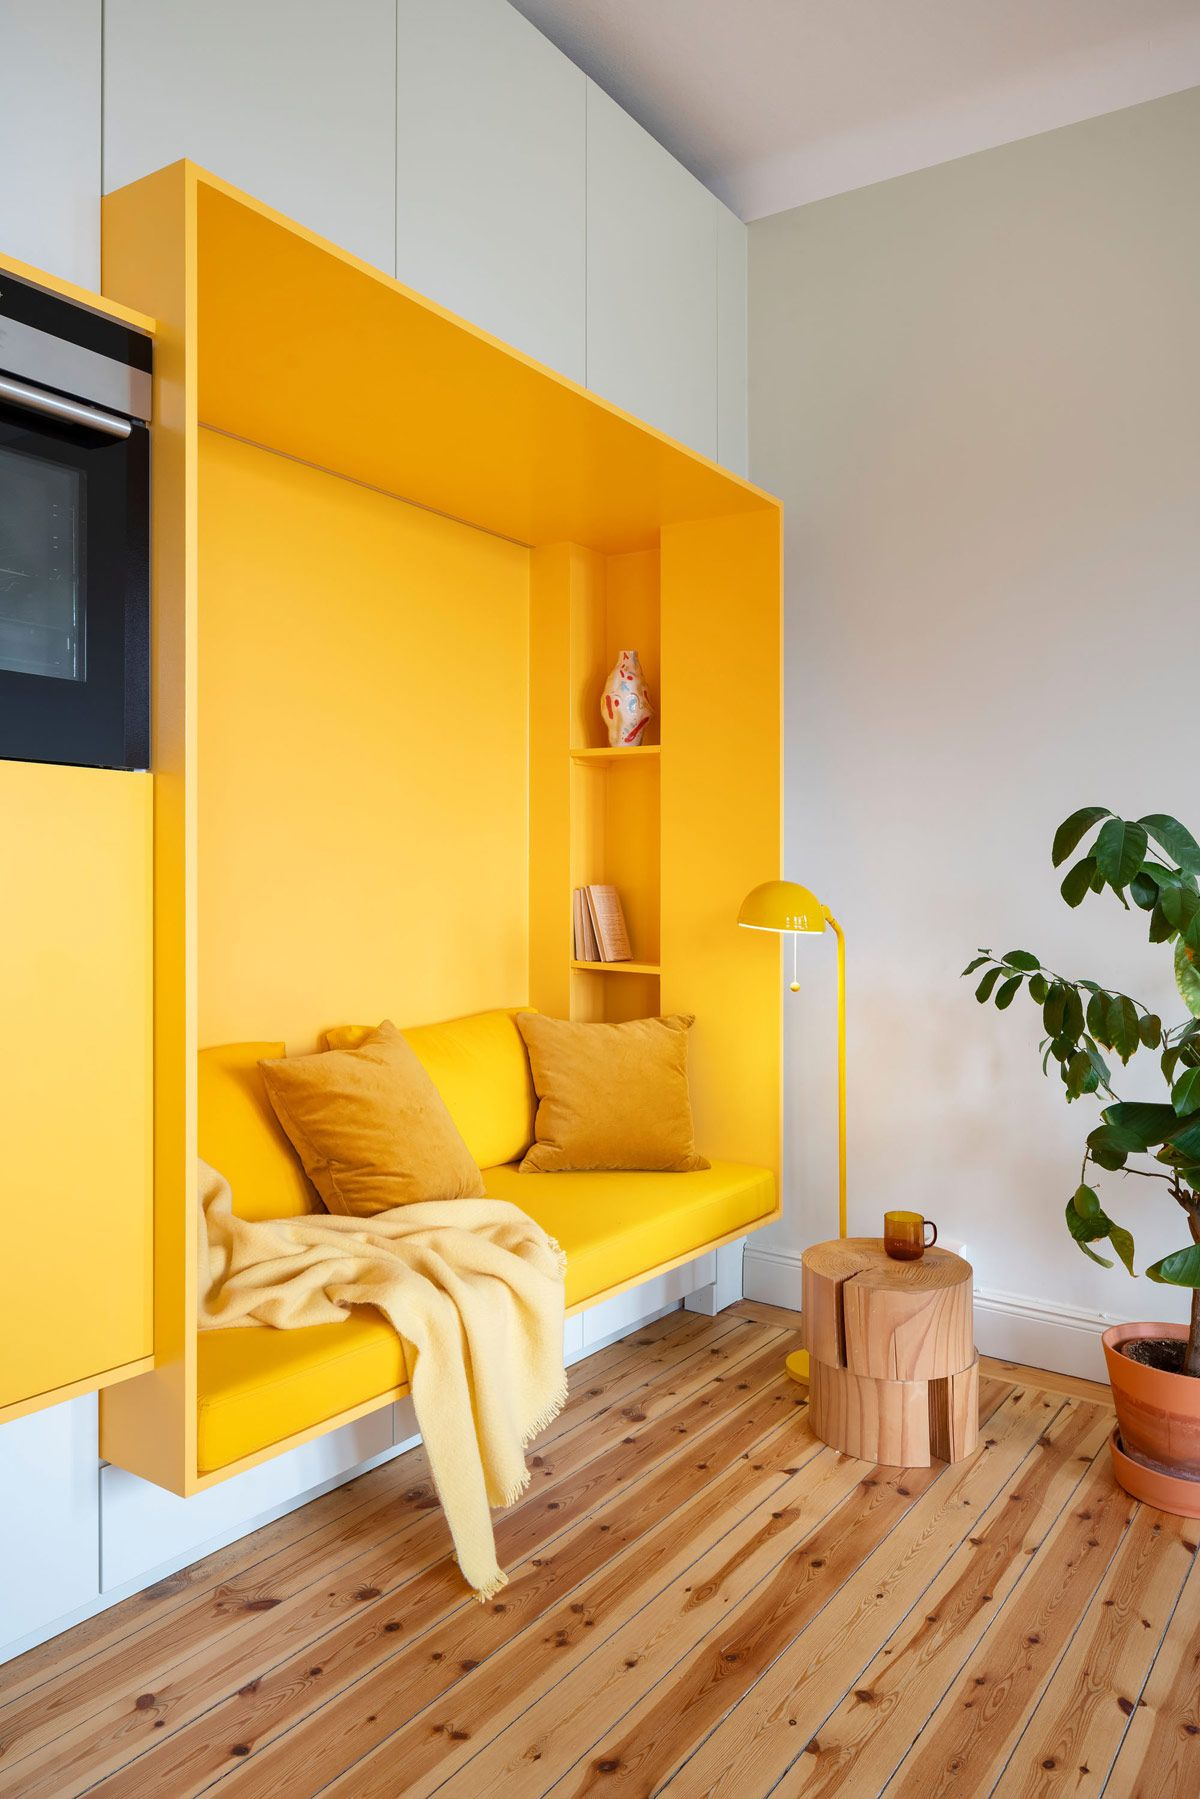 White And Yellow Interior Design Tips With Images To Get It Right